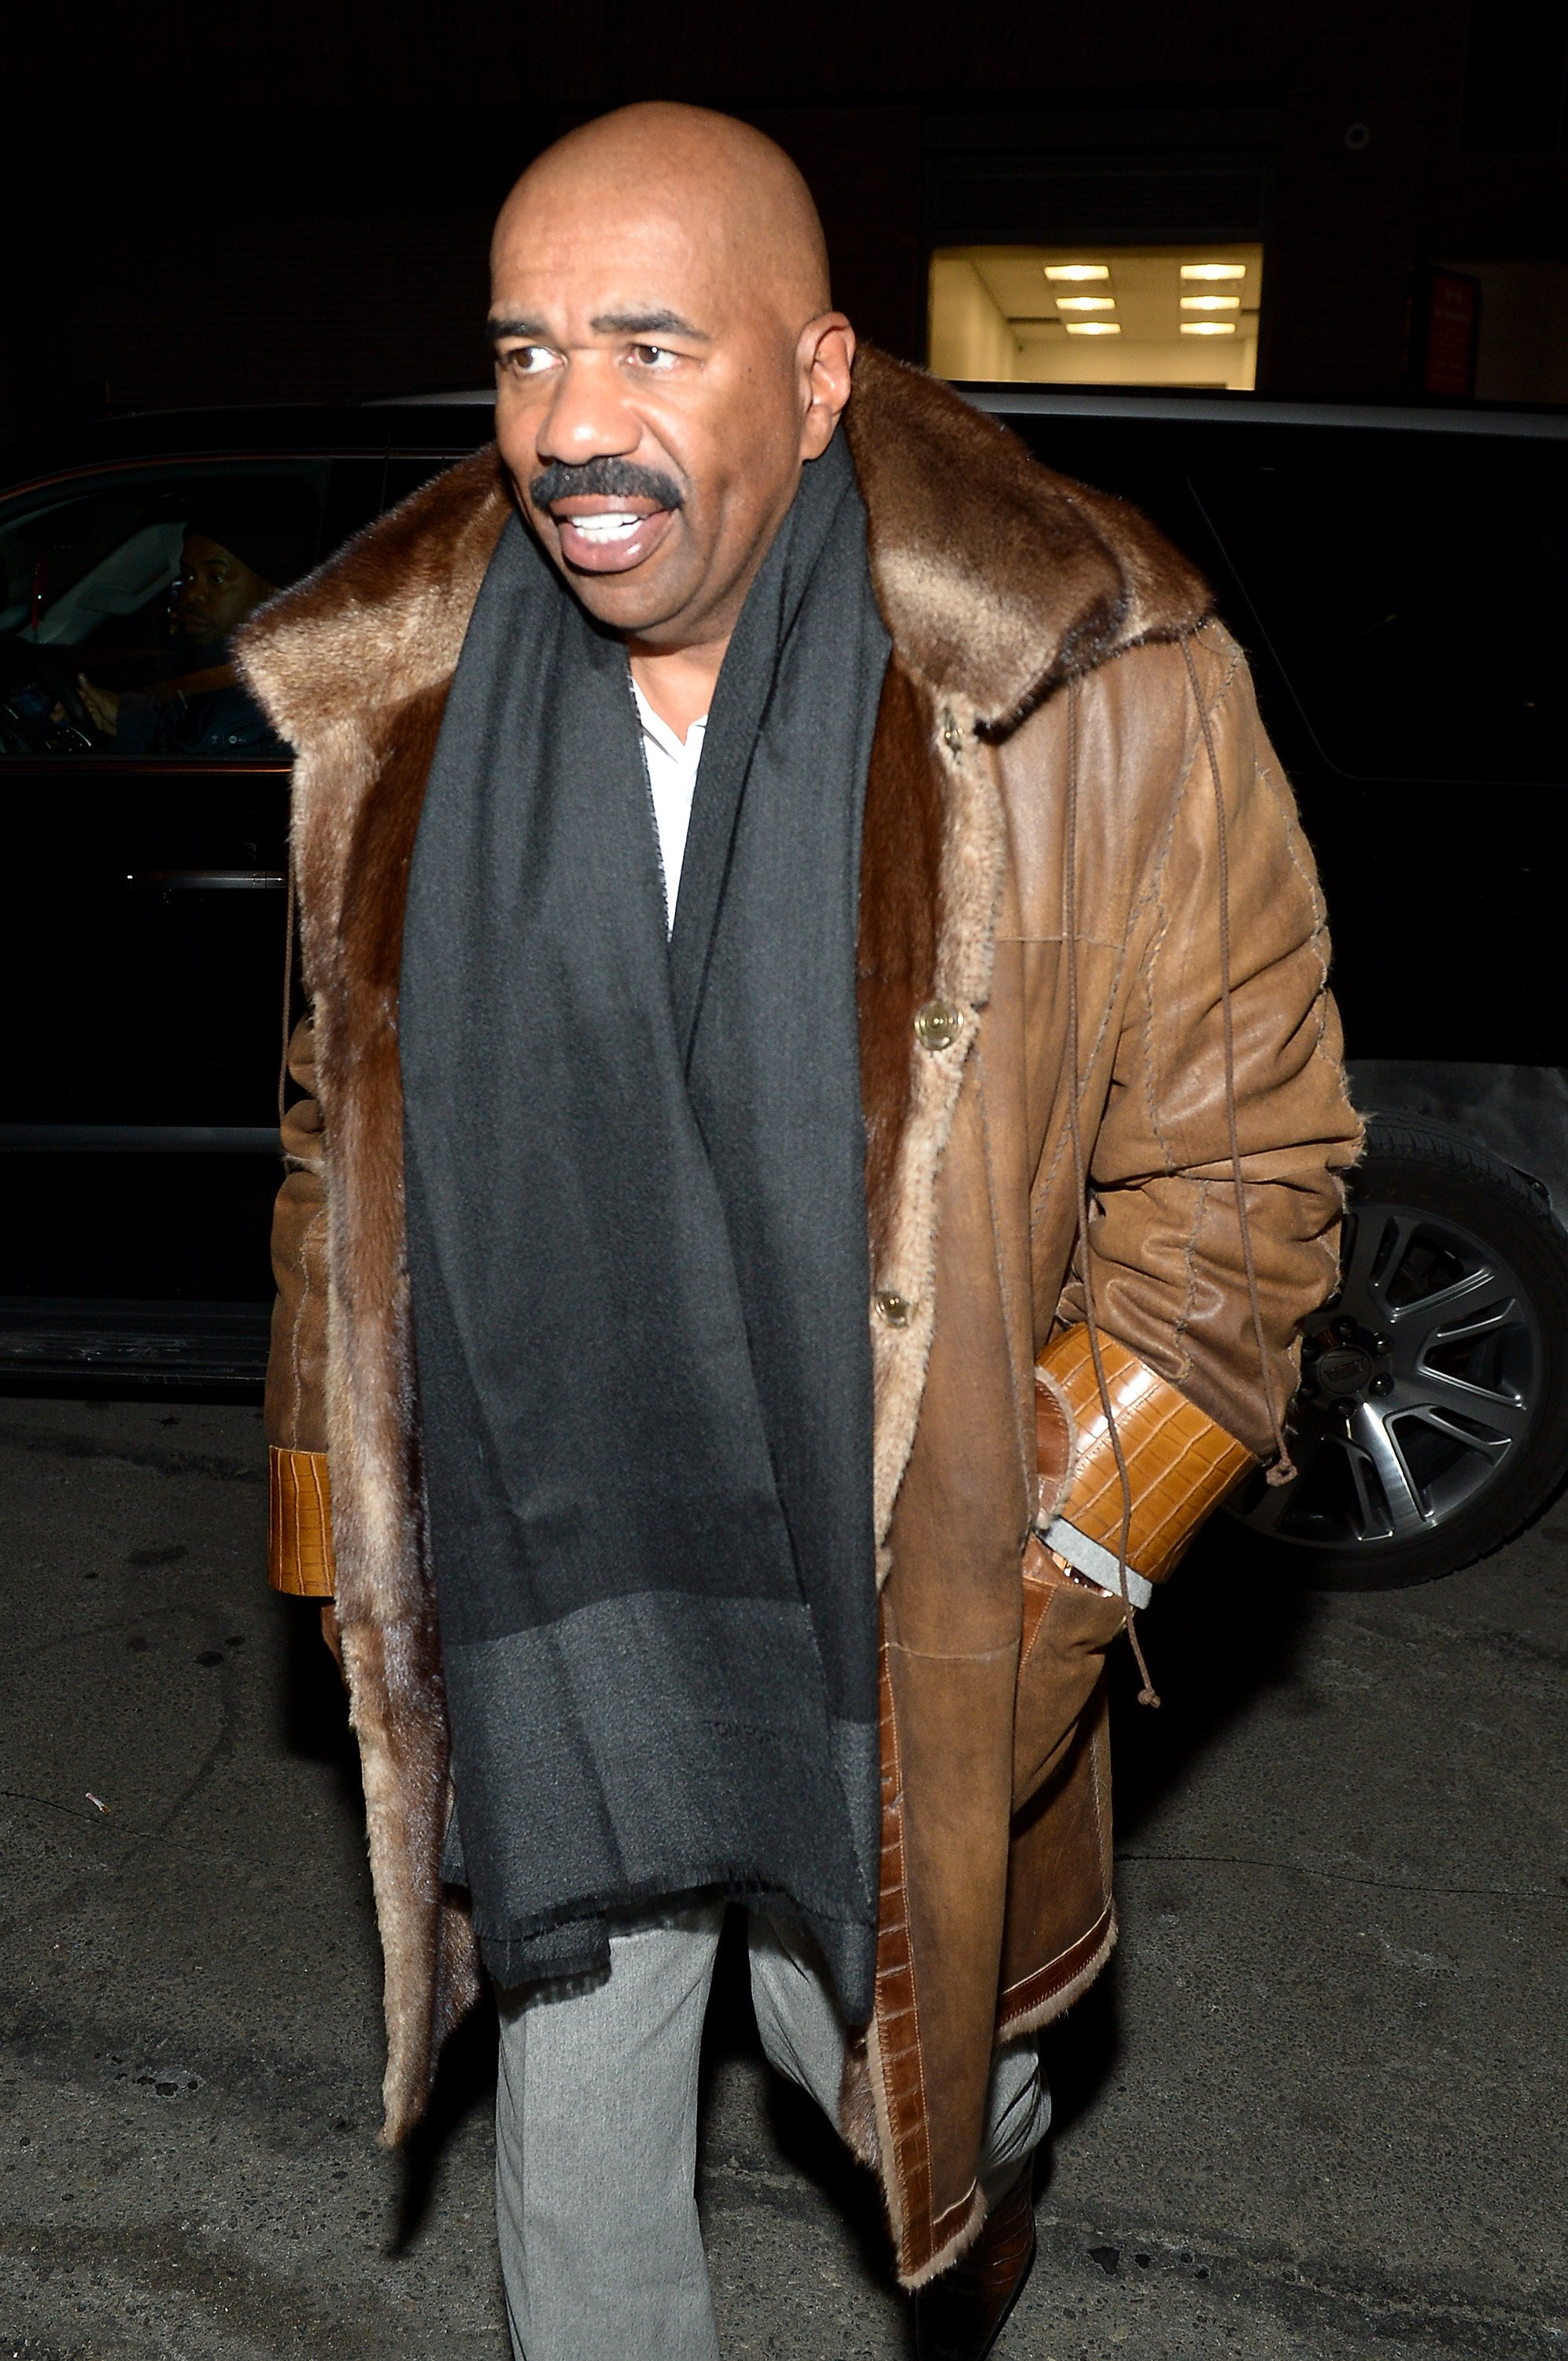 Steve Harvey attends day 4 of New York Fashion Week in New York City on February 14, 2016 | Photo: Getty Images